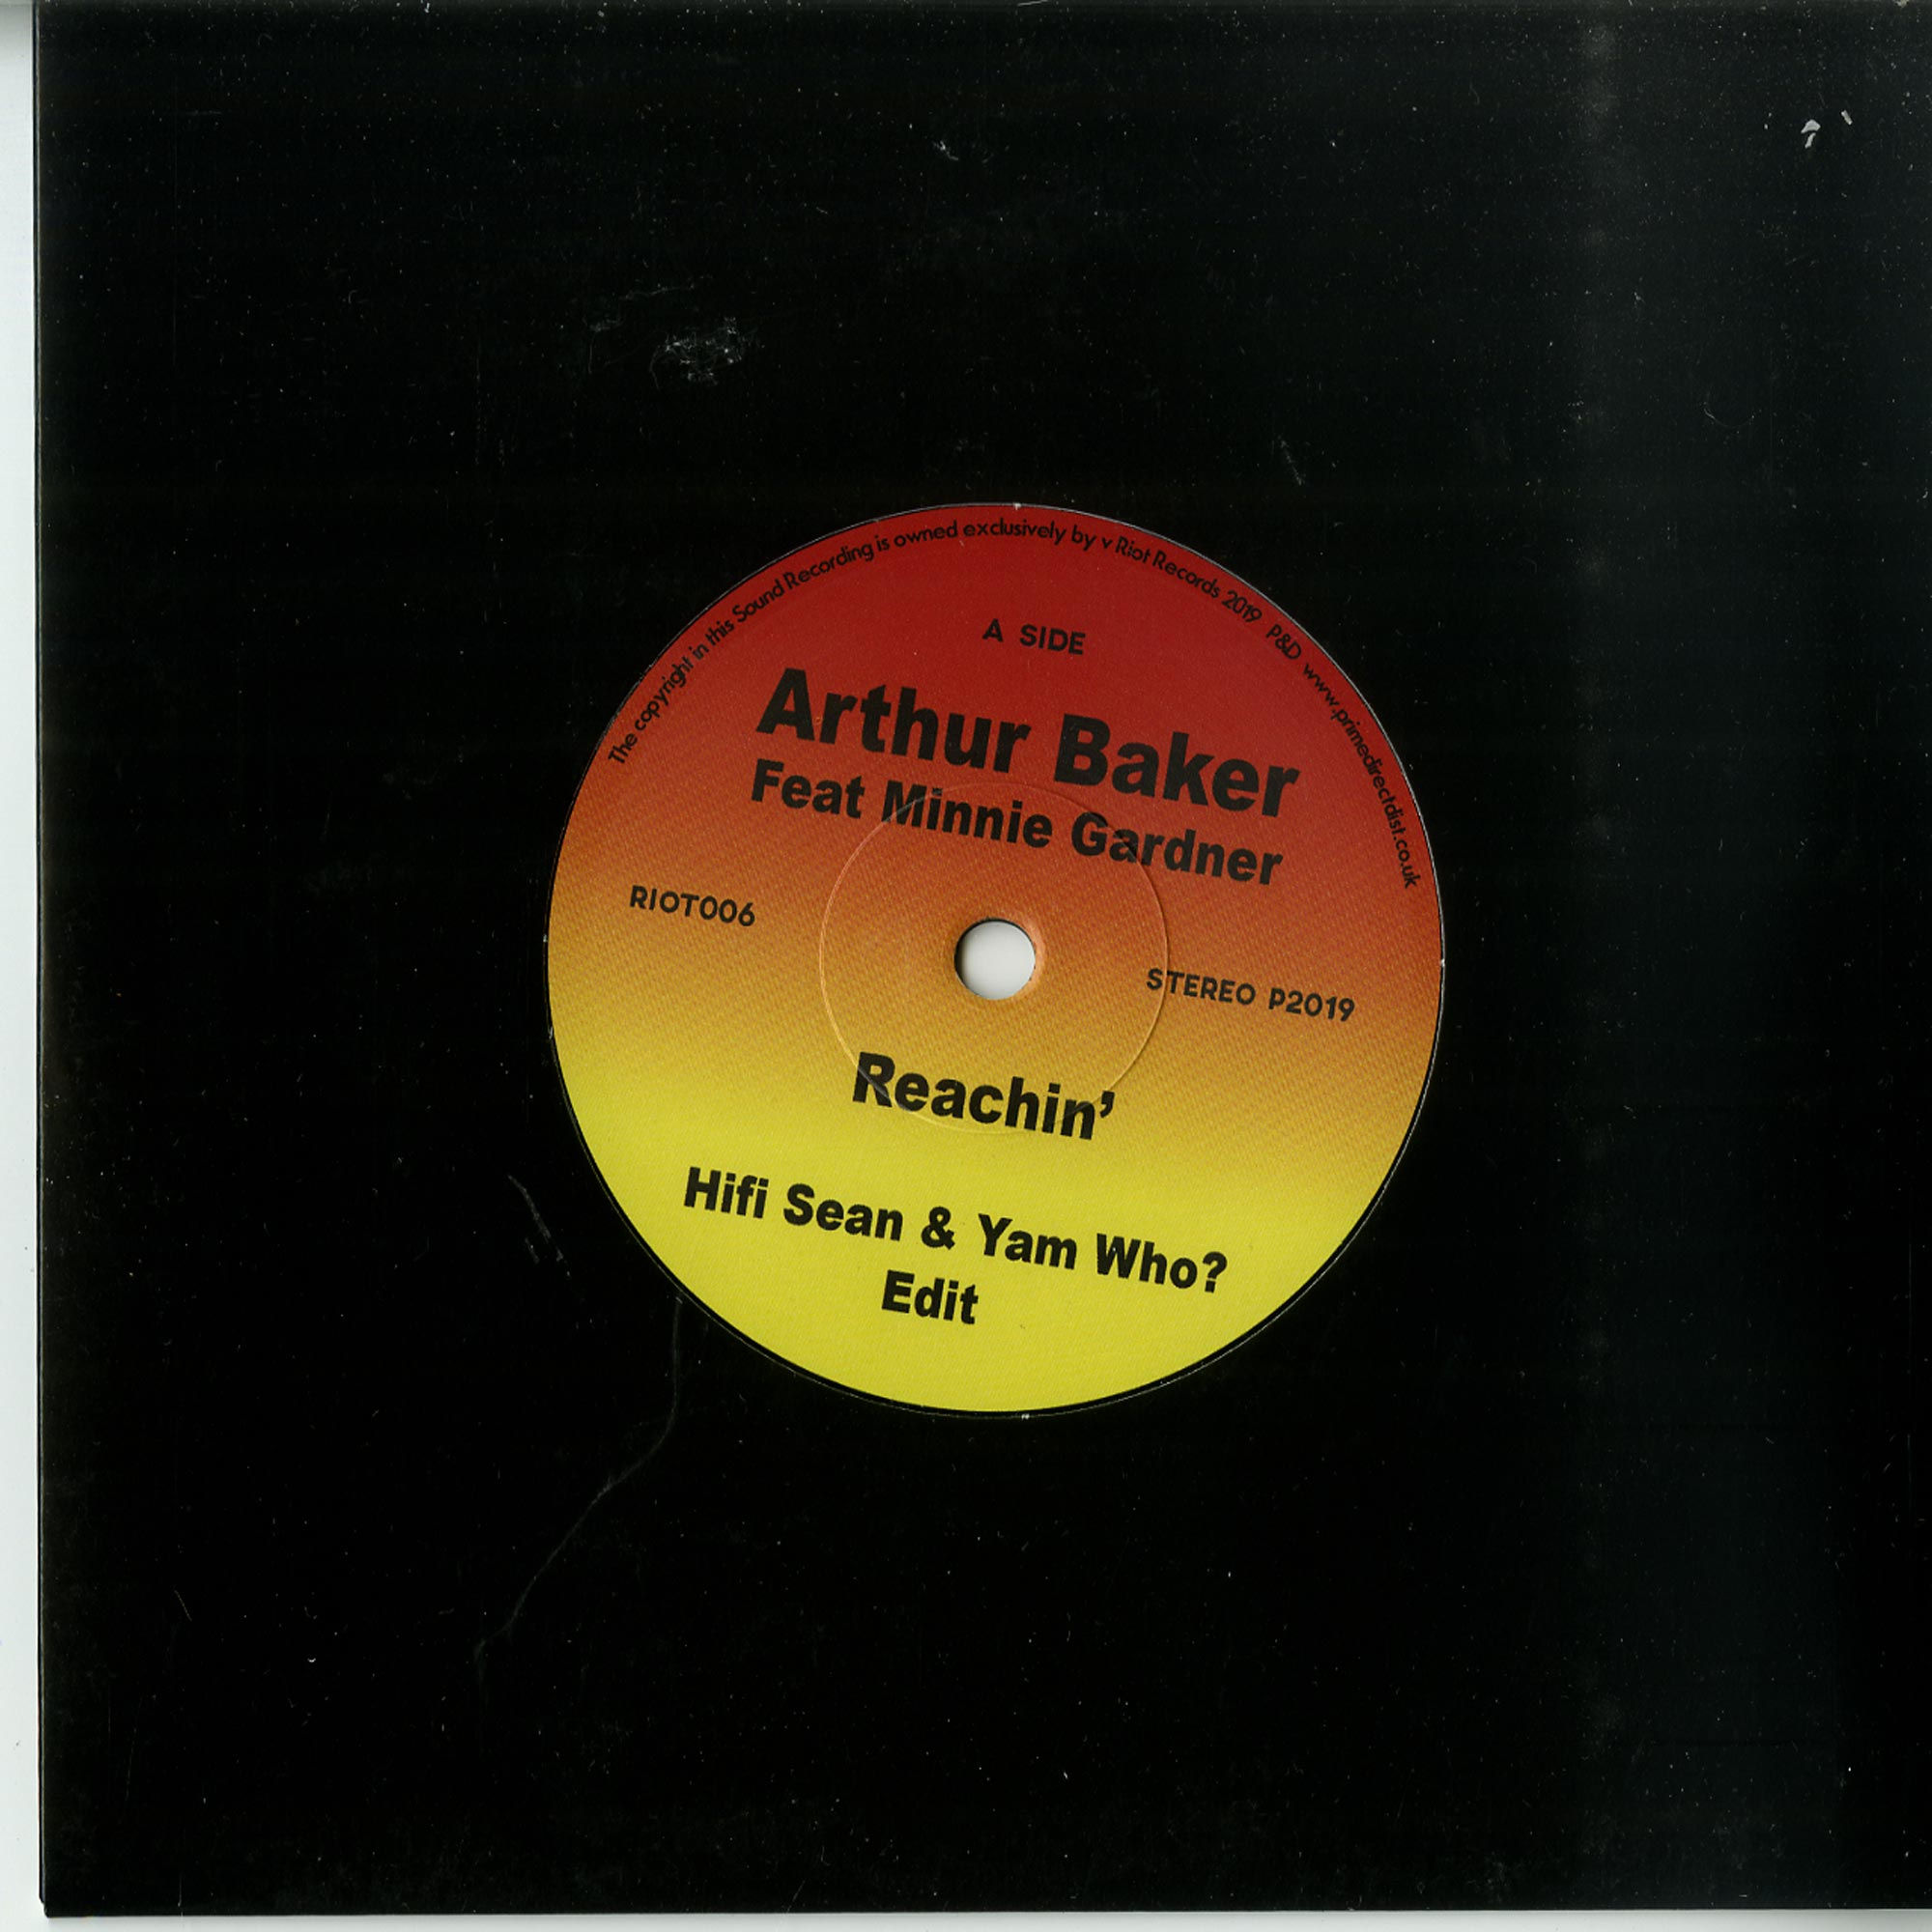 Arthur Baker Ft Minnie Gardner - REACHIN